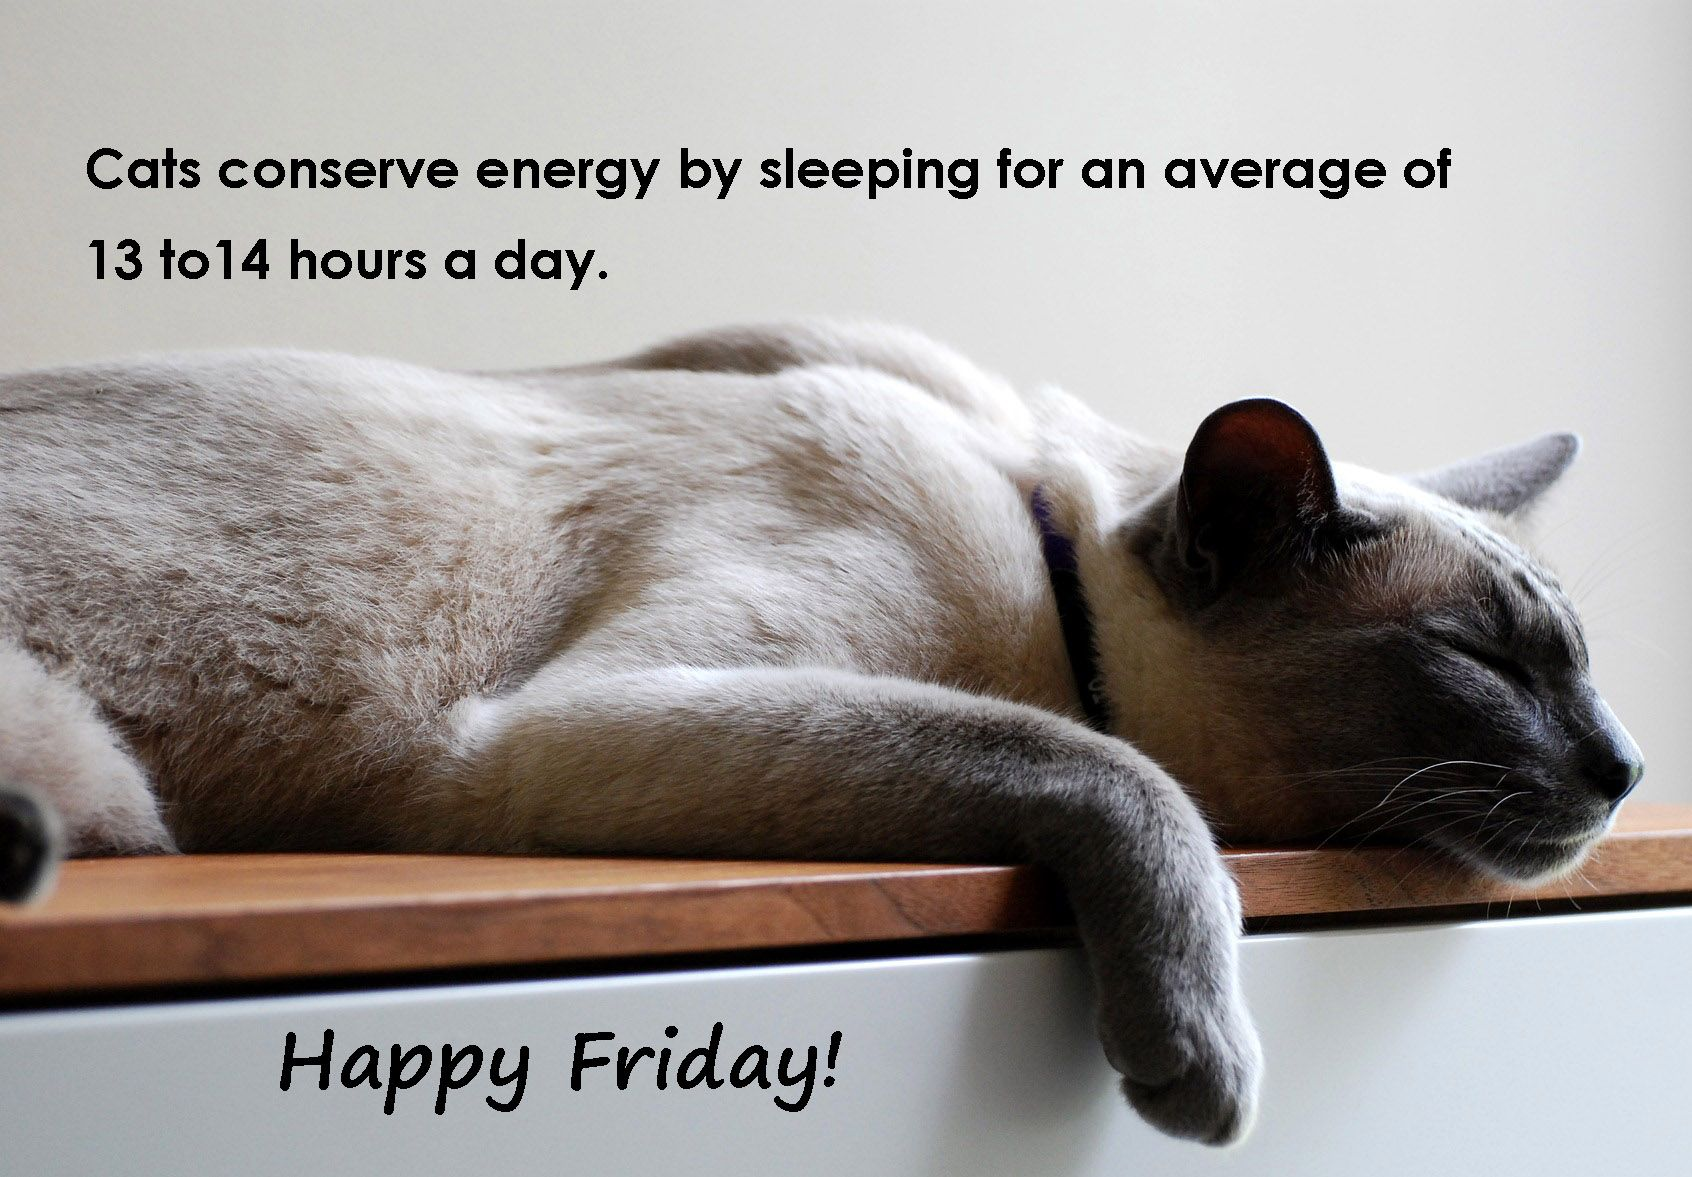 Cats conserve energy by sleeping for an average of 13 to